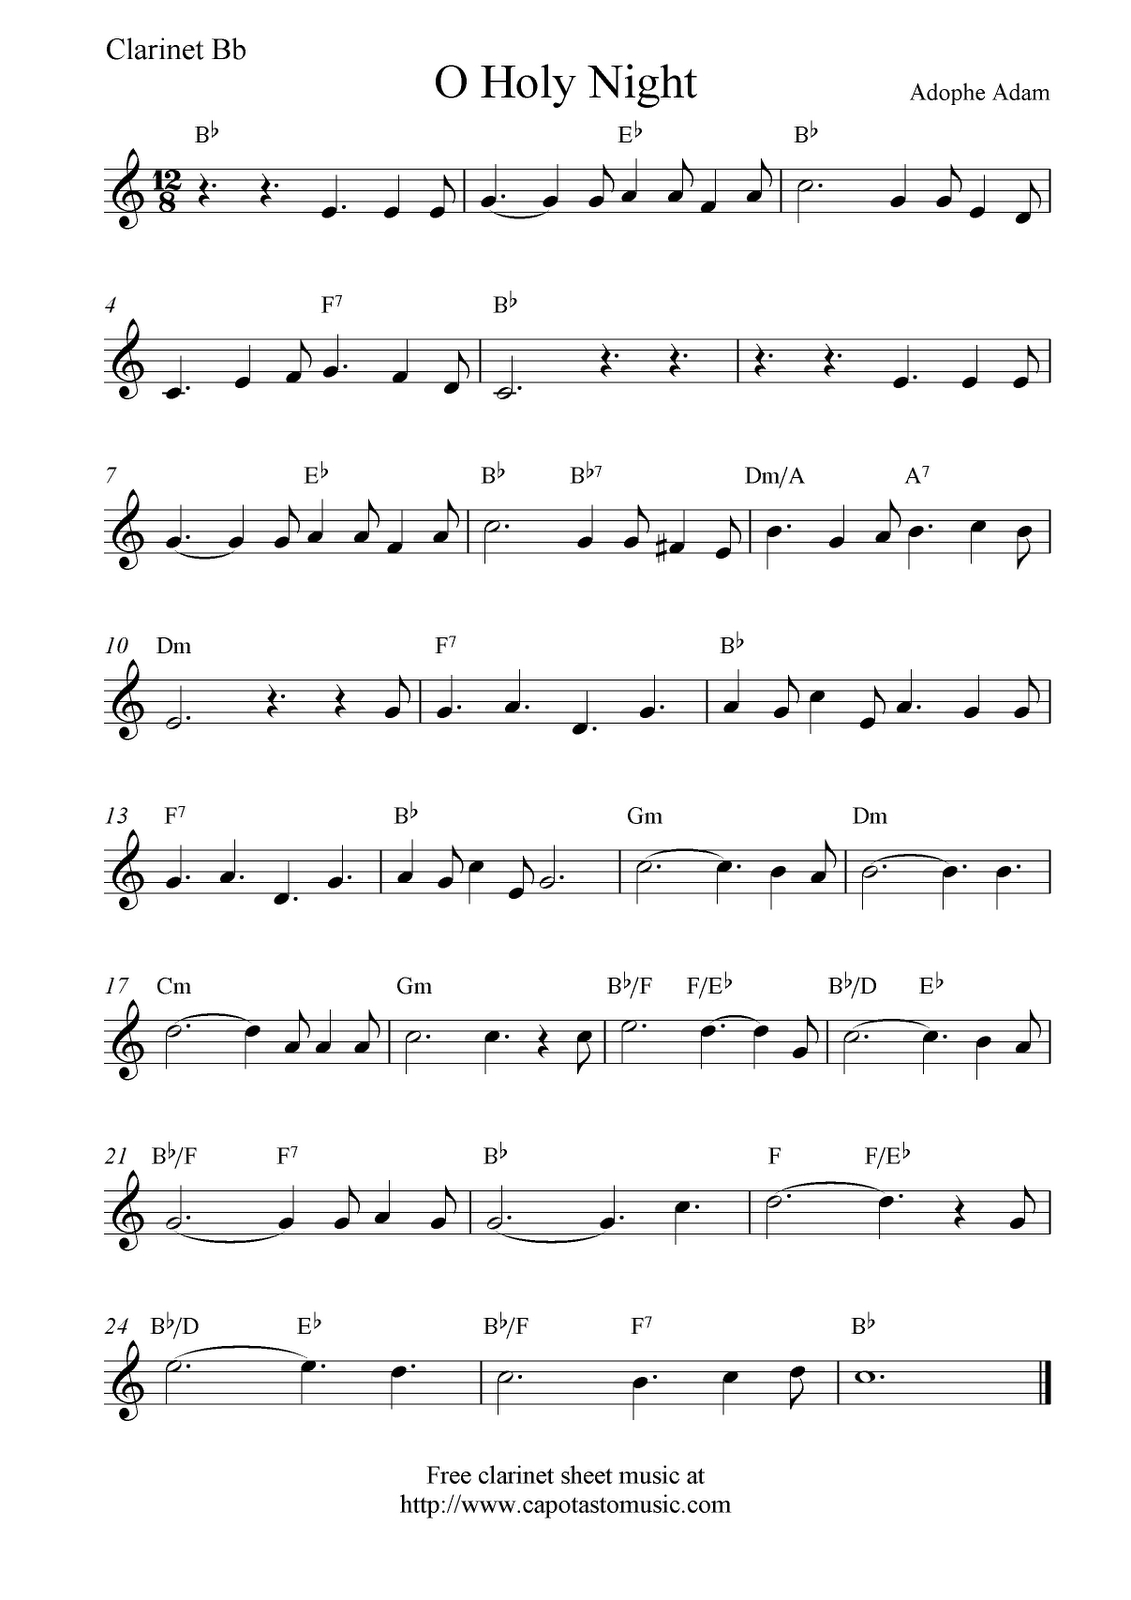 Christmas Music For Clairnet |  Music Scores: O Holy Night, Free - Free Printable Clarinet Music